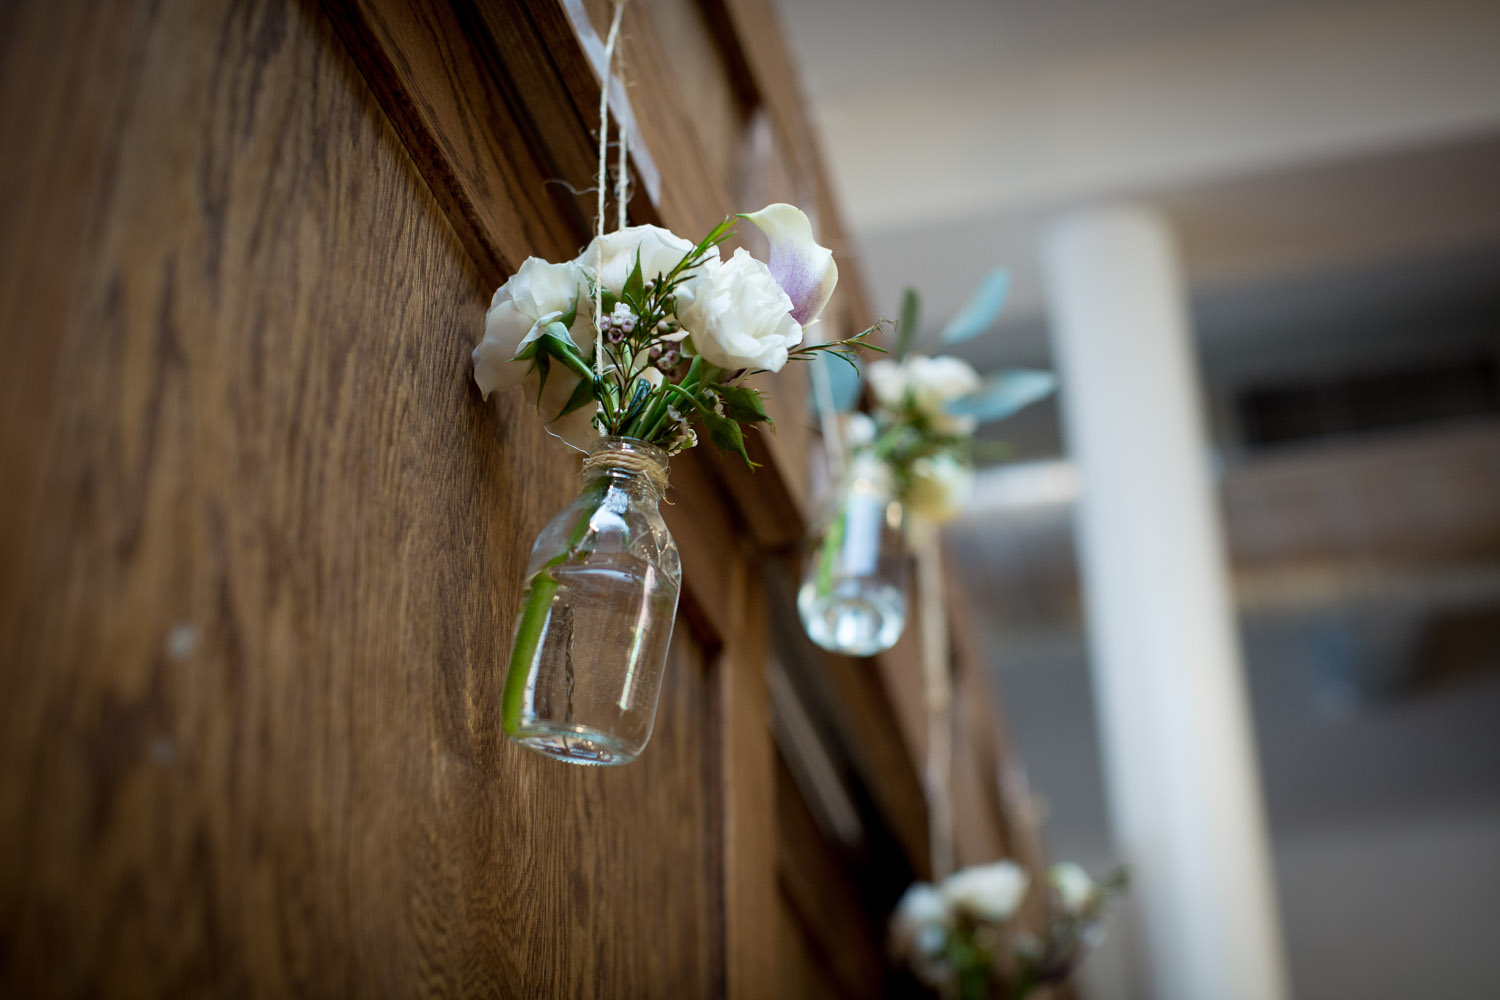 07-cornerstone-studios-wedding-professionals-small-events-ceremony-details-flowers-bottles-mahonen-photography.jpg